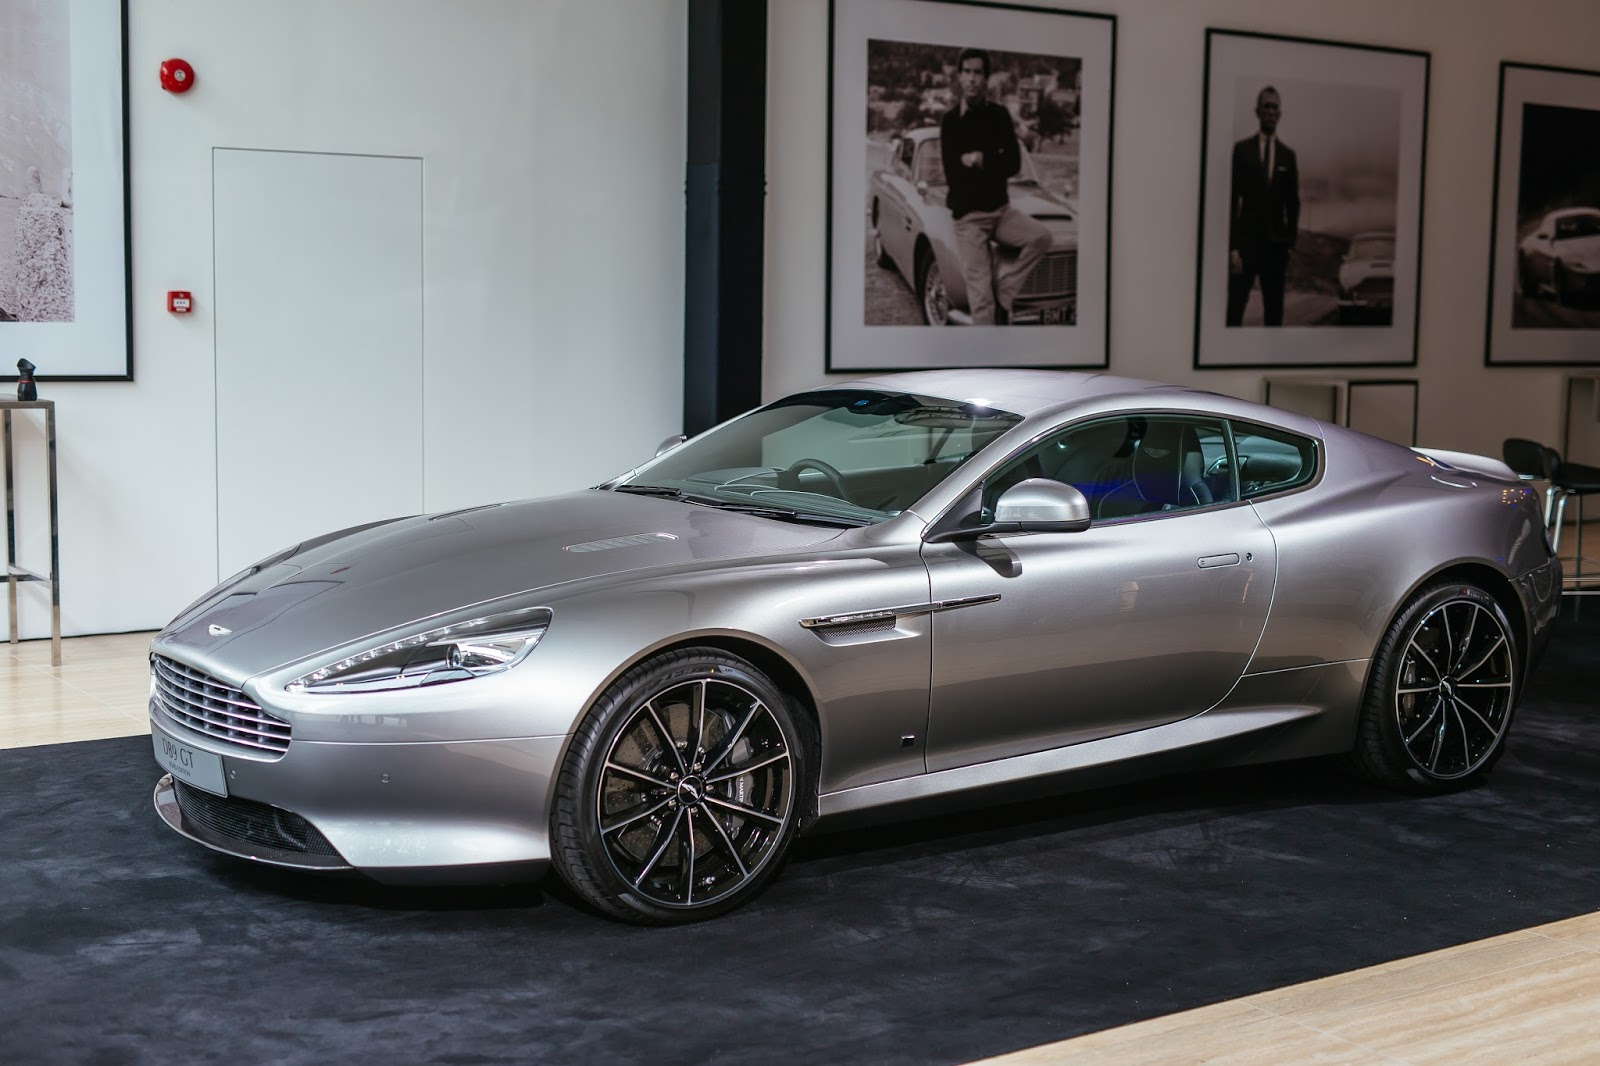 aston martin vip launch of its new showroom, workshop and db10 on